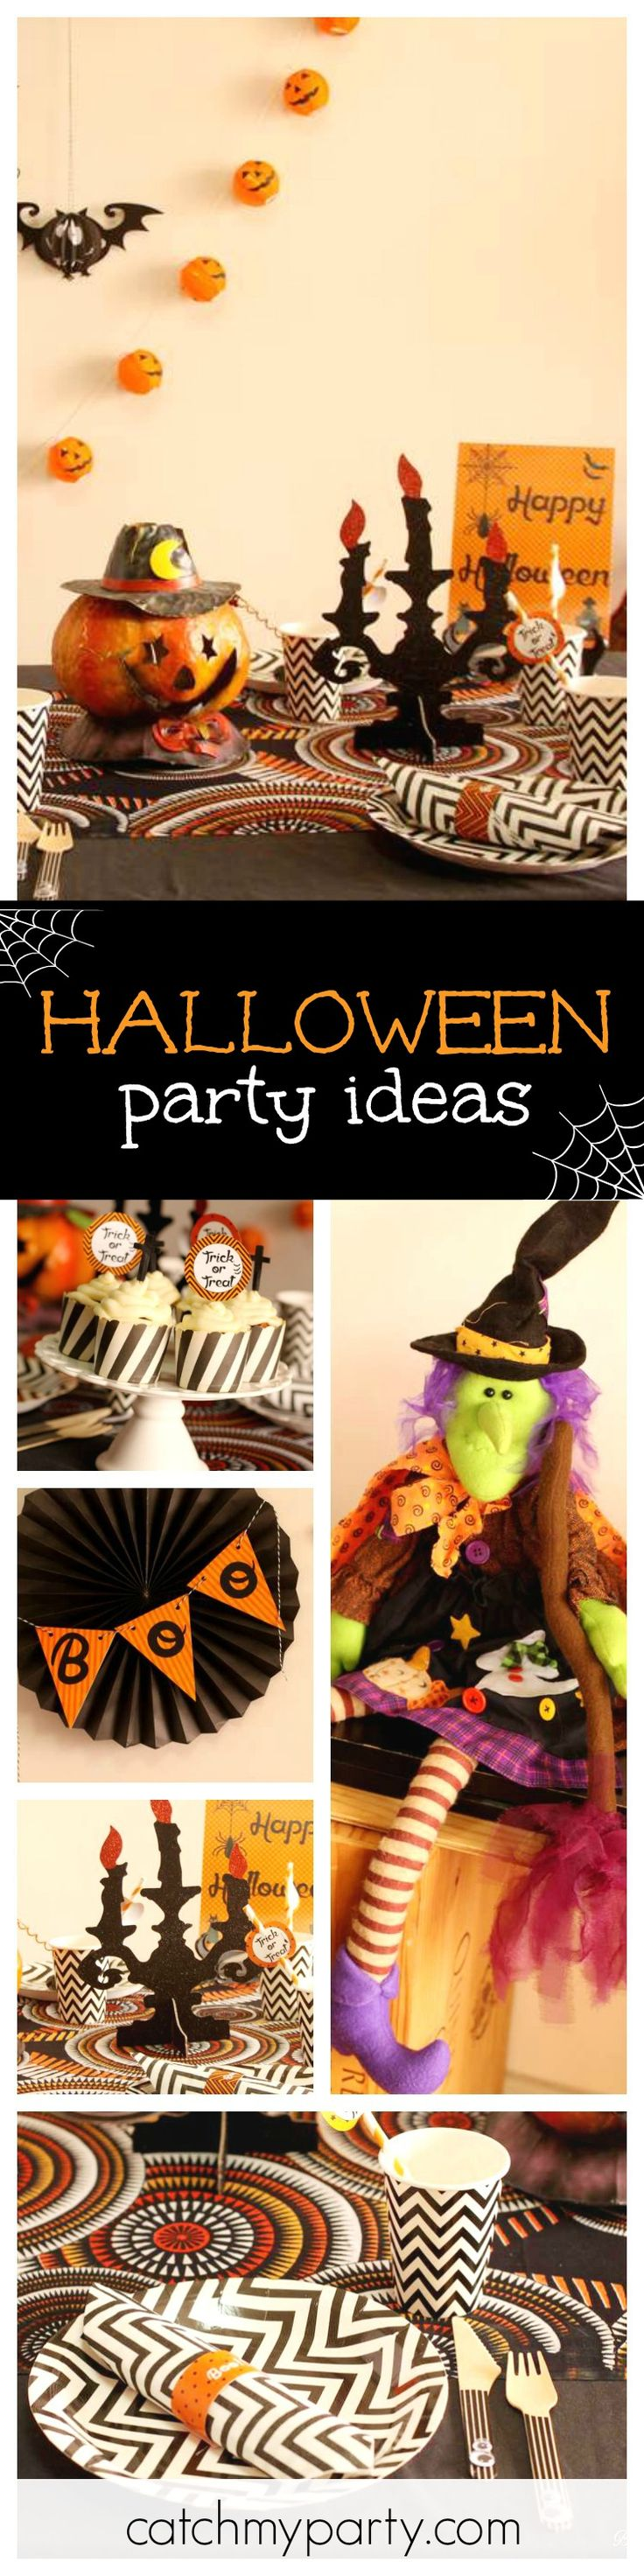 905 best Halloween Party Ideas images on Pinterest